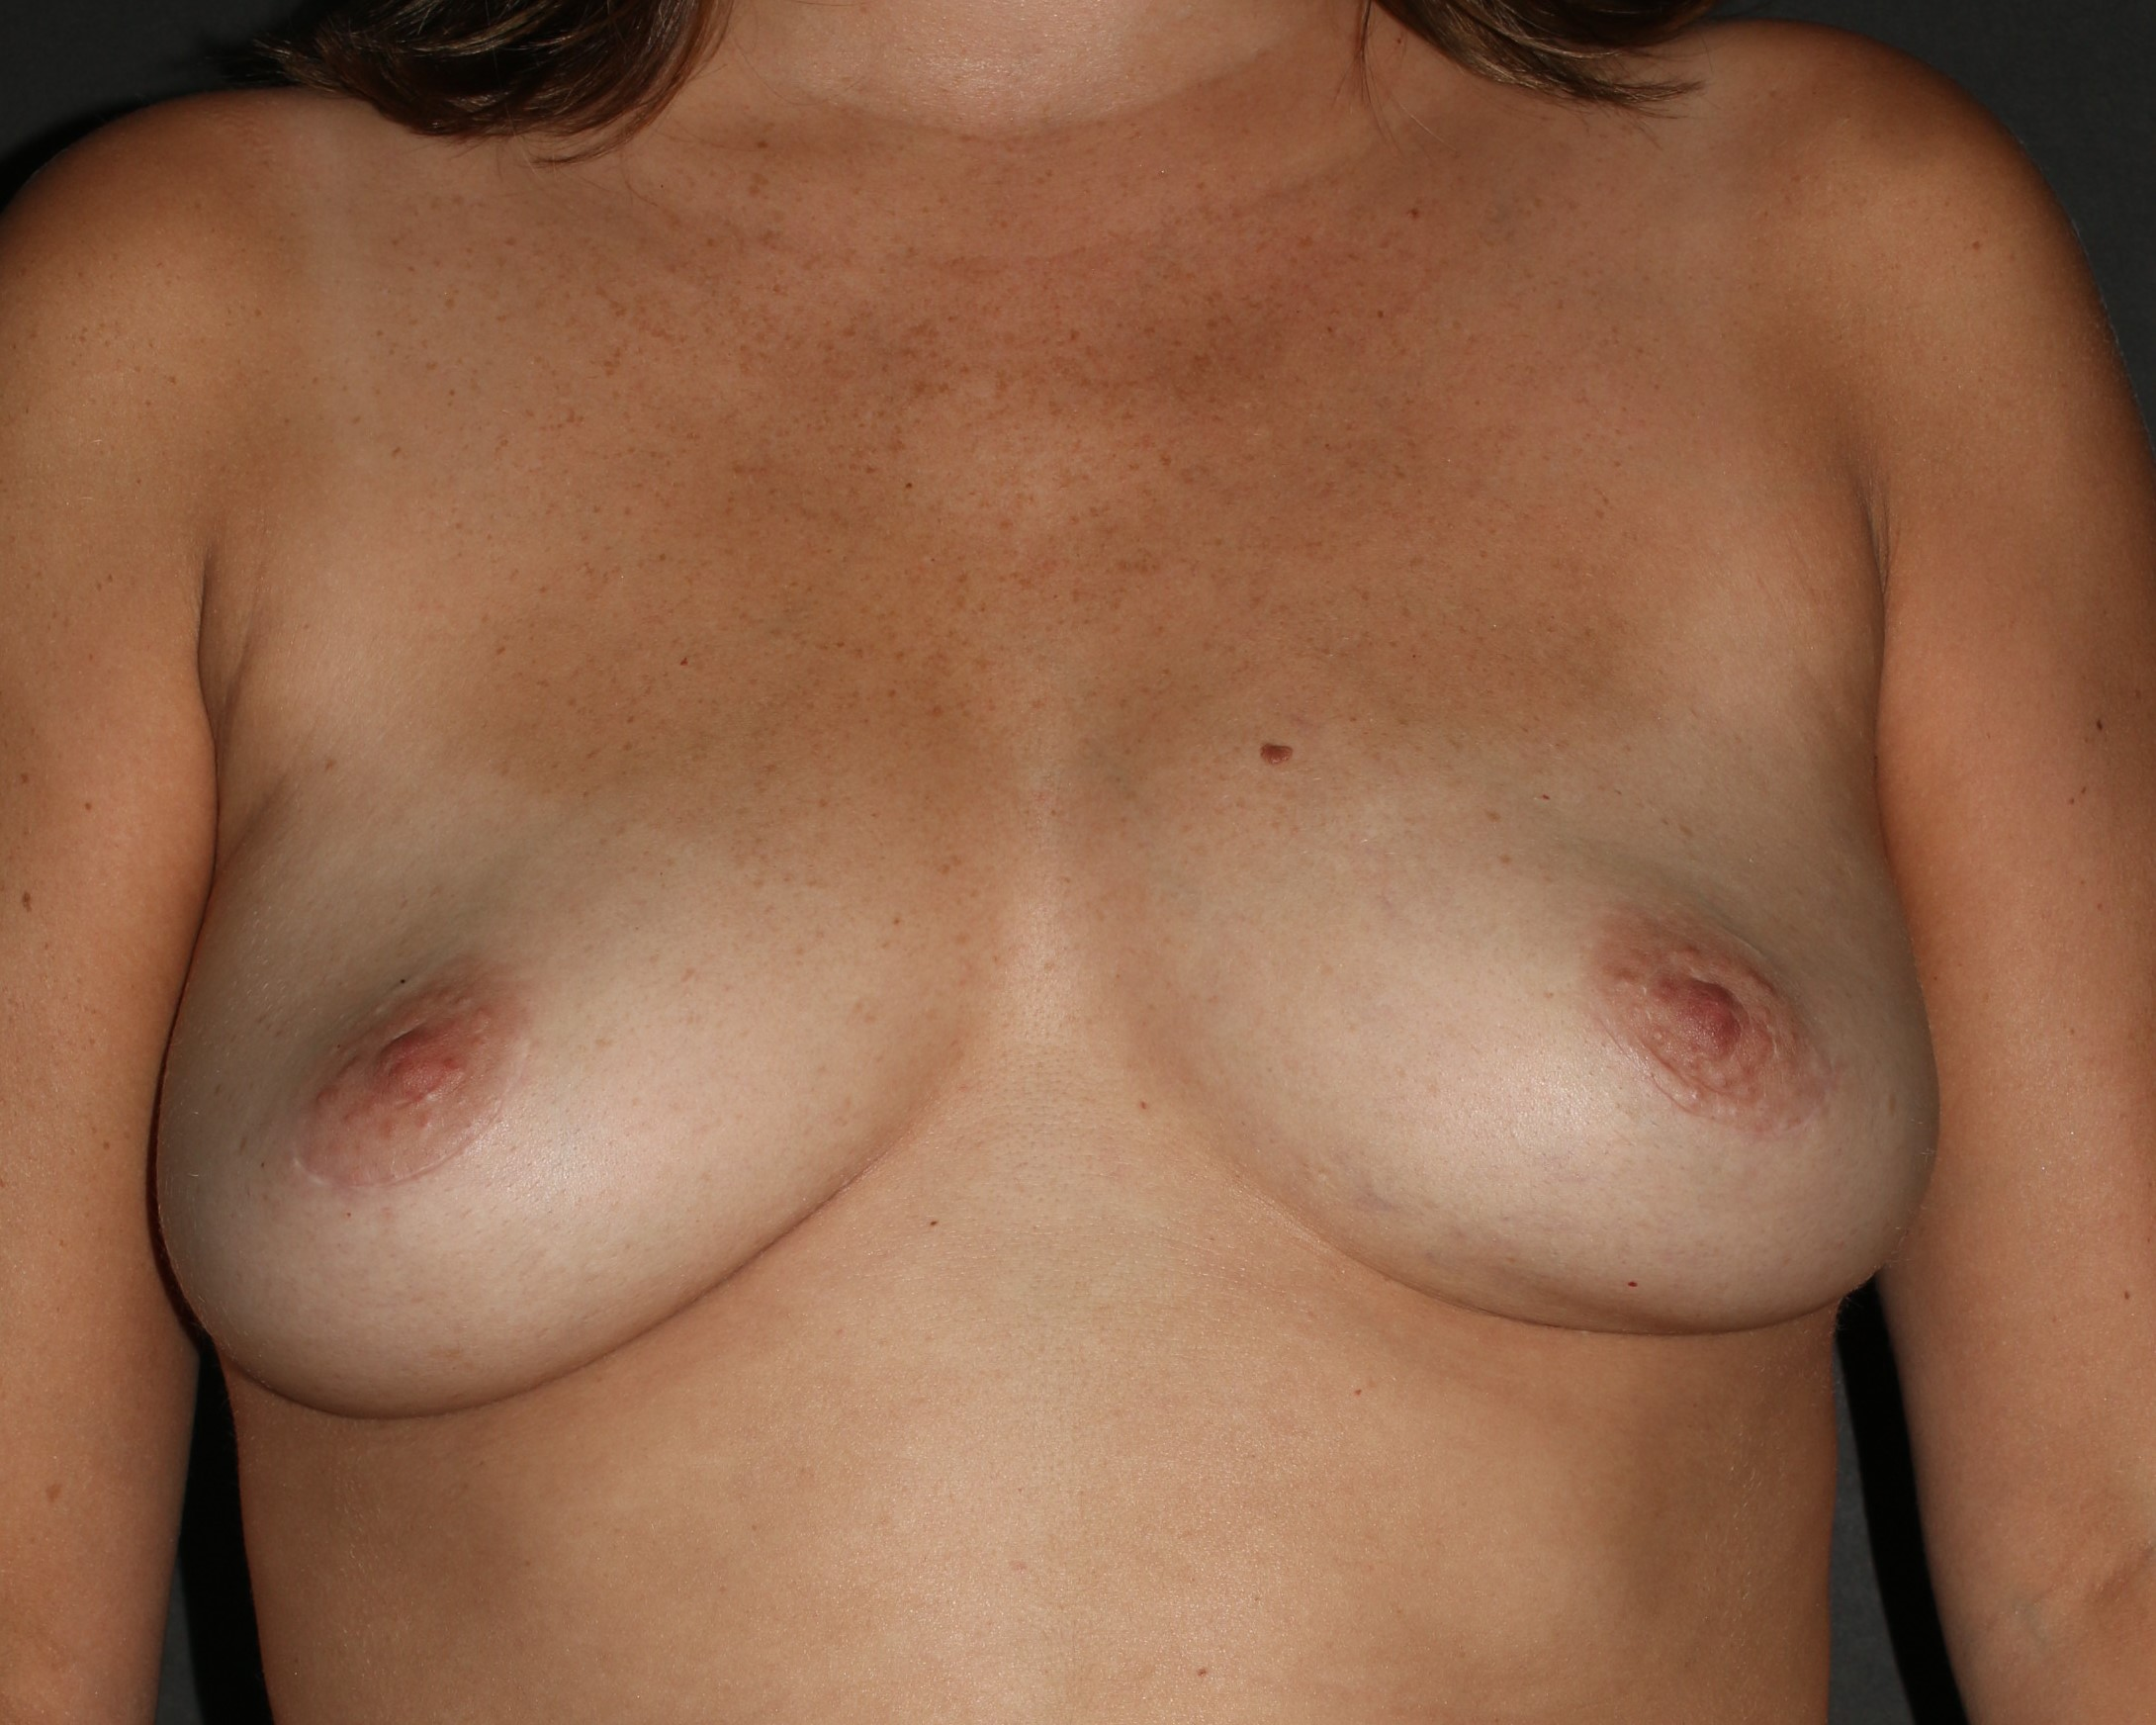 Breast Implant Removal - Before & After - Dr. Placik